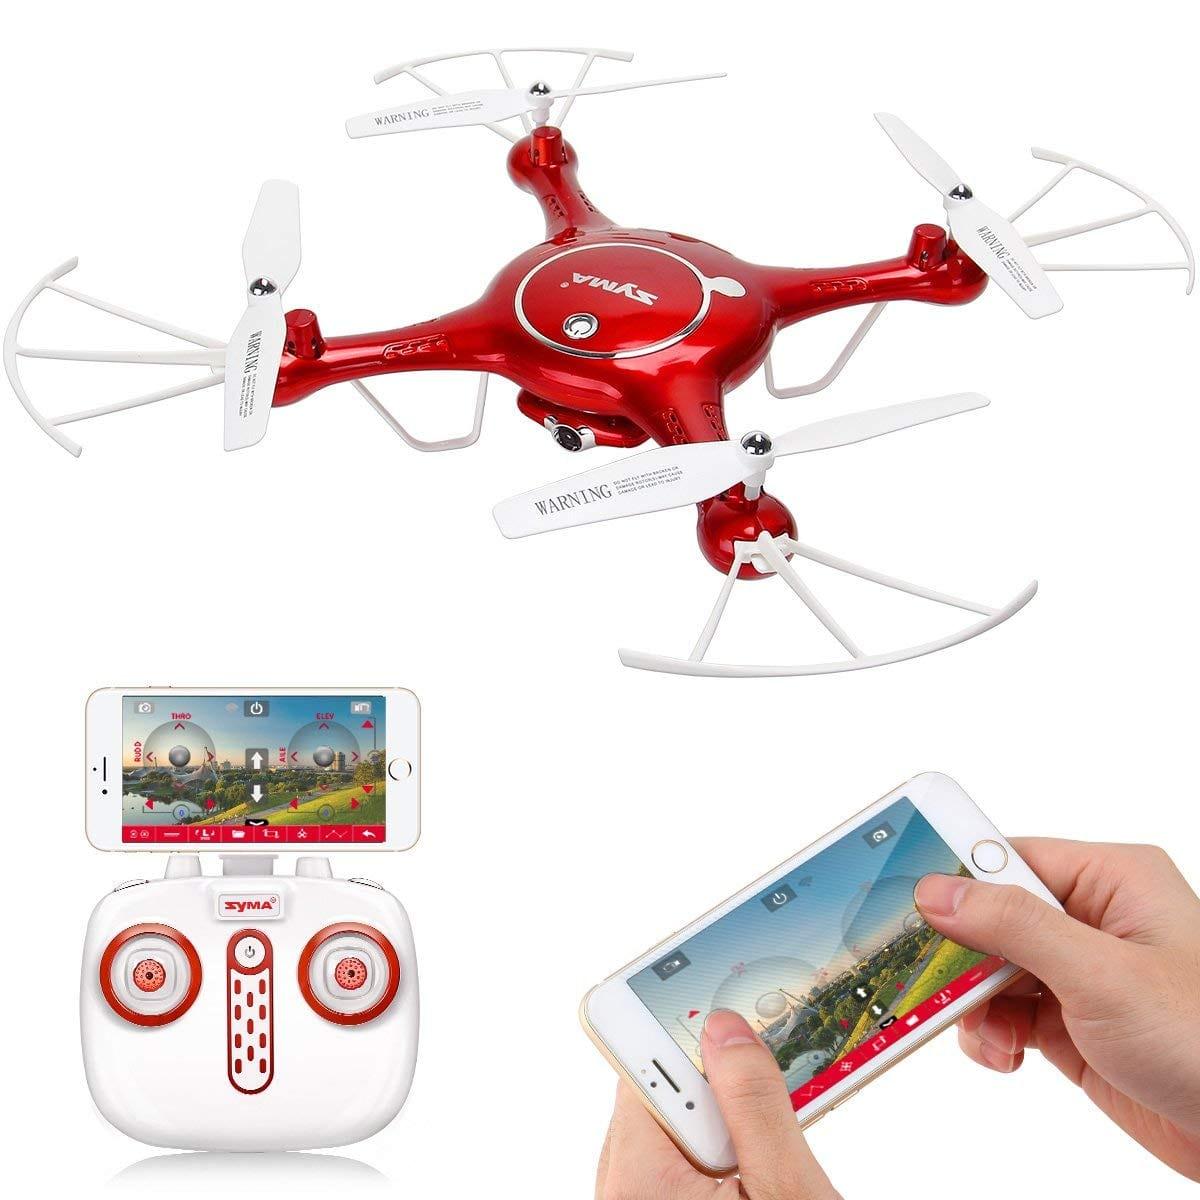 Syma X5UW Wifi FPV 720P HD Camera Quadcopter Drone with Flight Plan Route App Control and Altitude Hold Function Red: Camera & Photo Lightning Deal $47